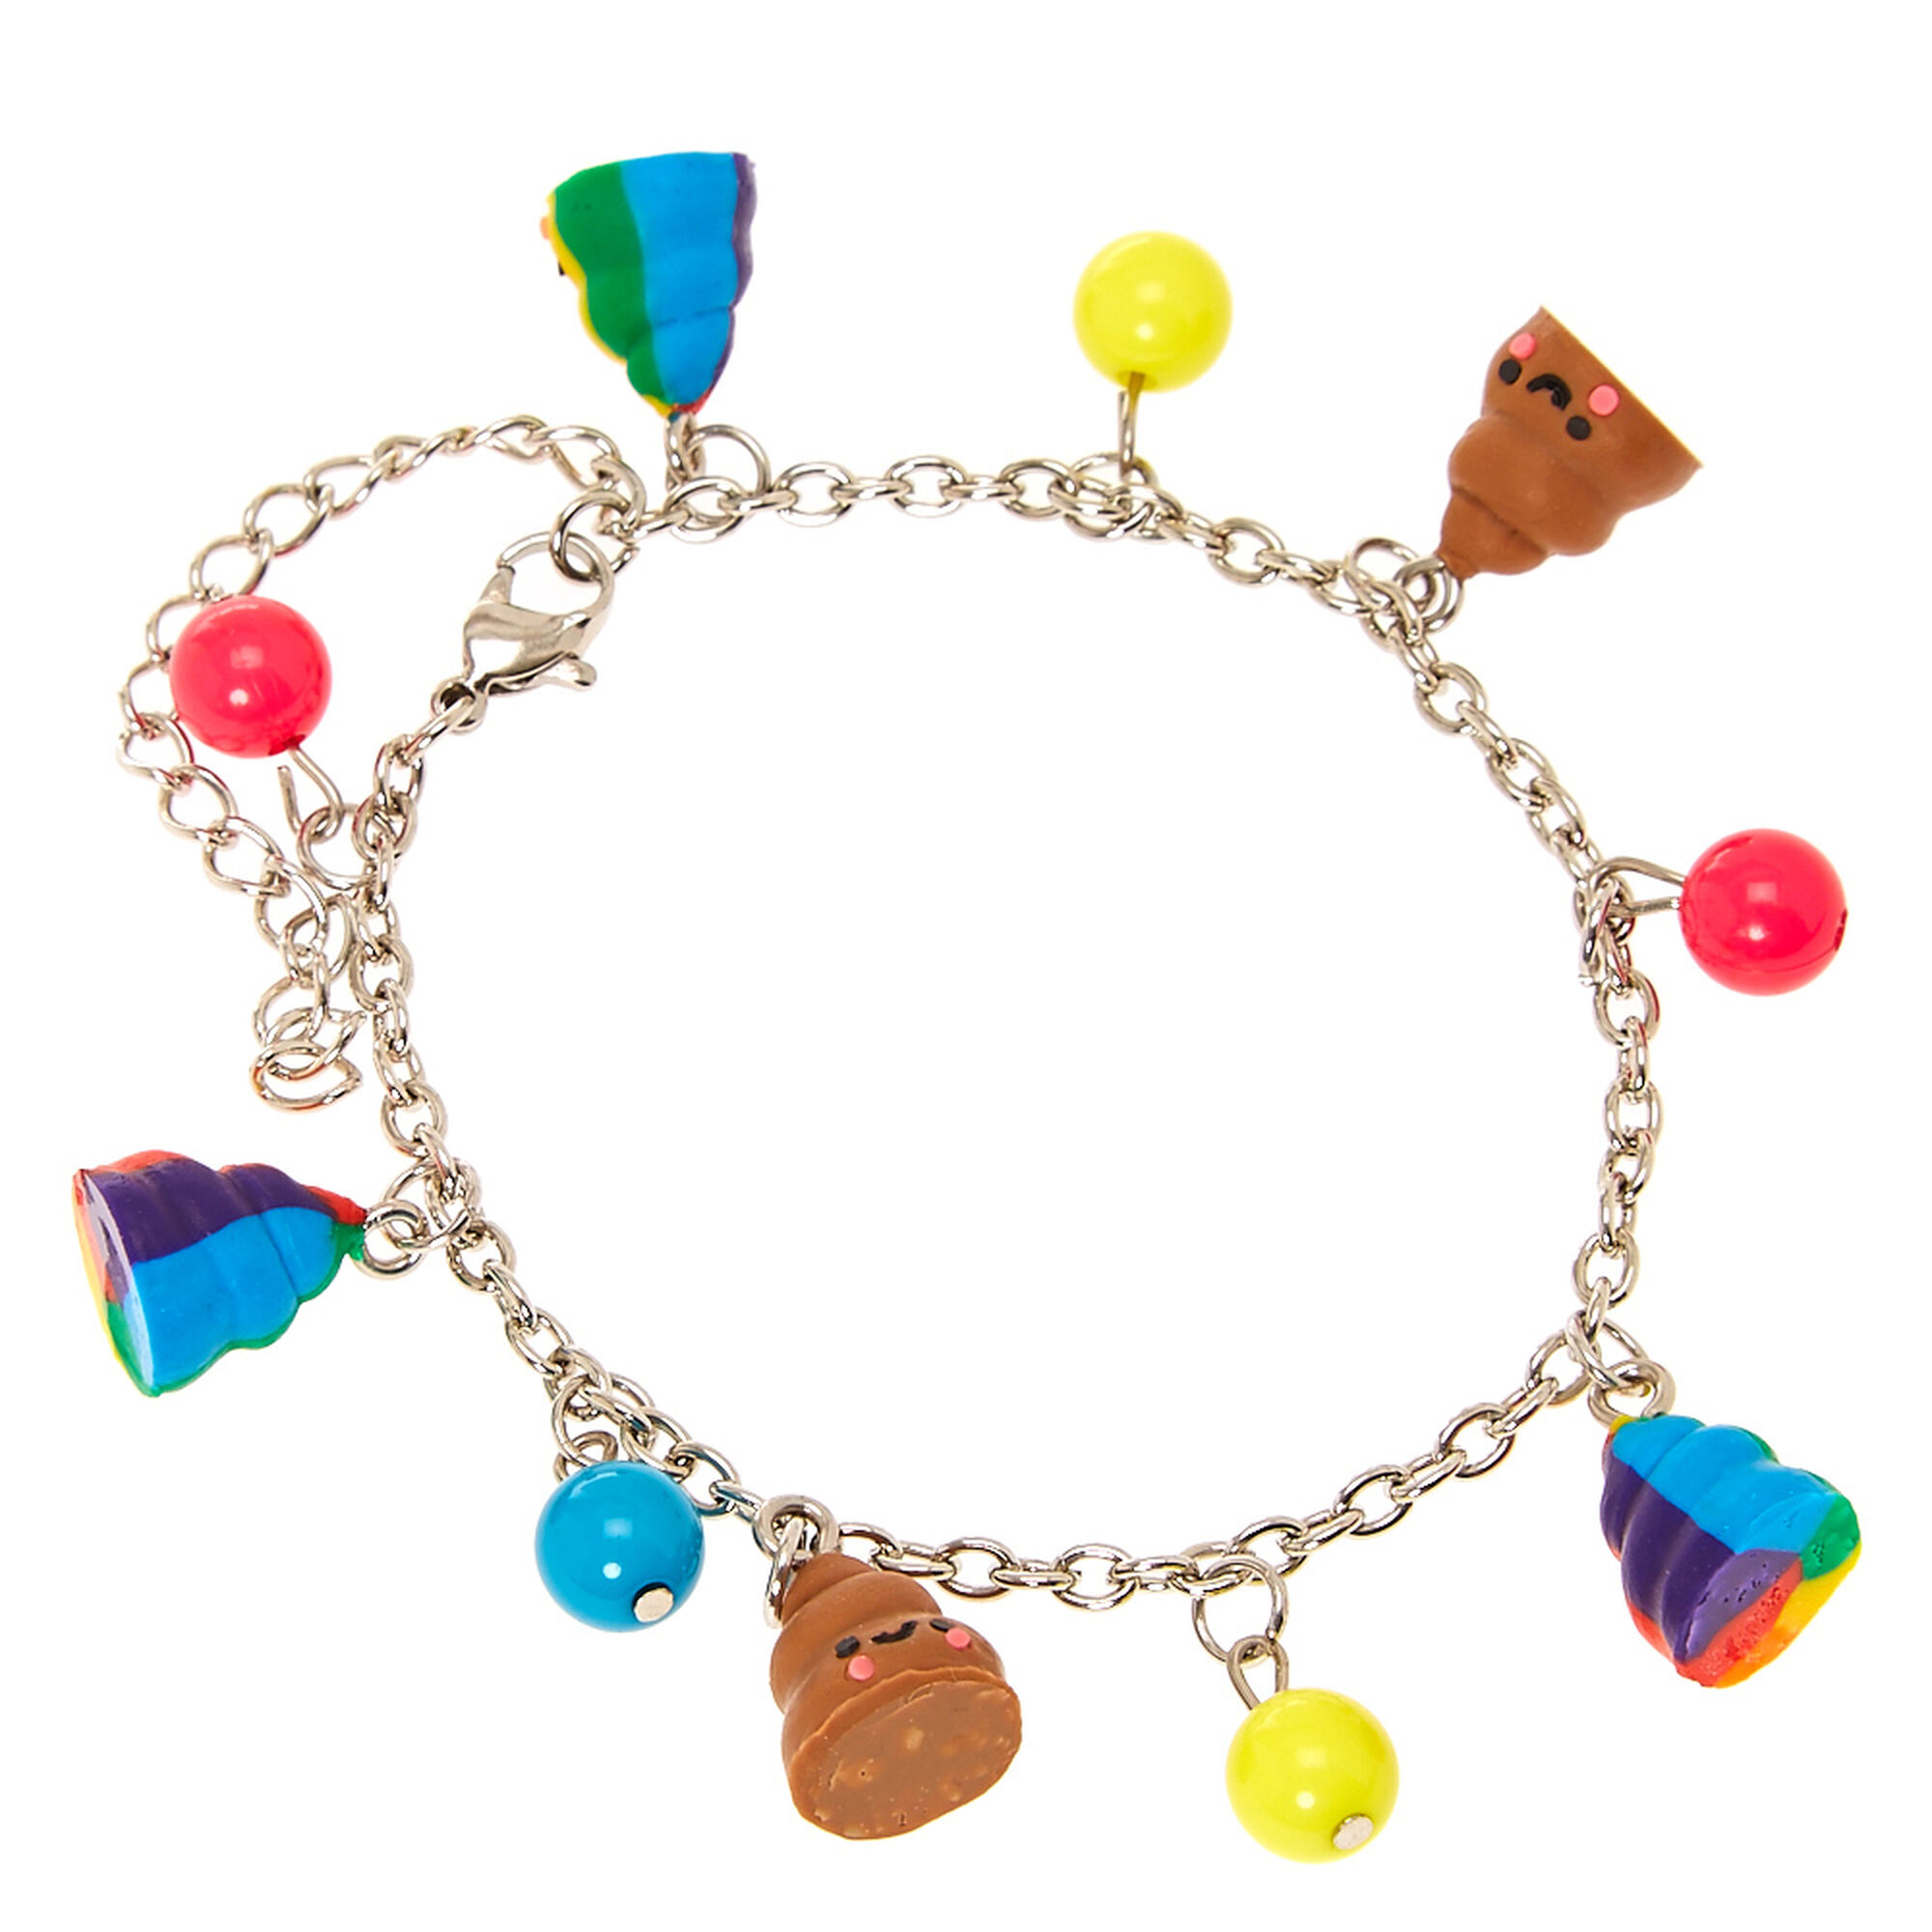 Smiling Pile of Poo and Coloured Beads Charm Bracelet